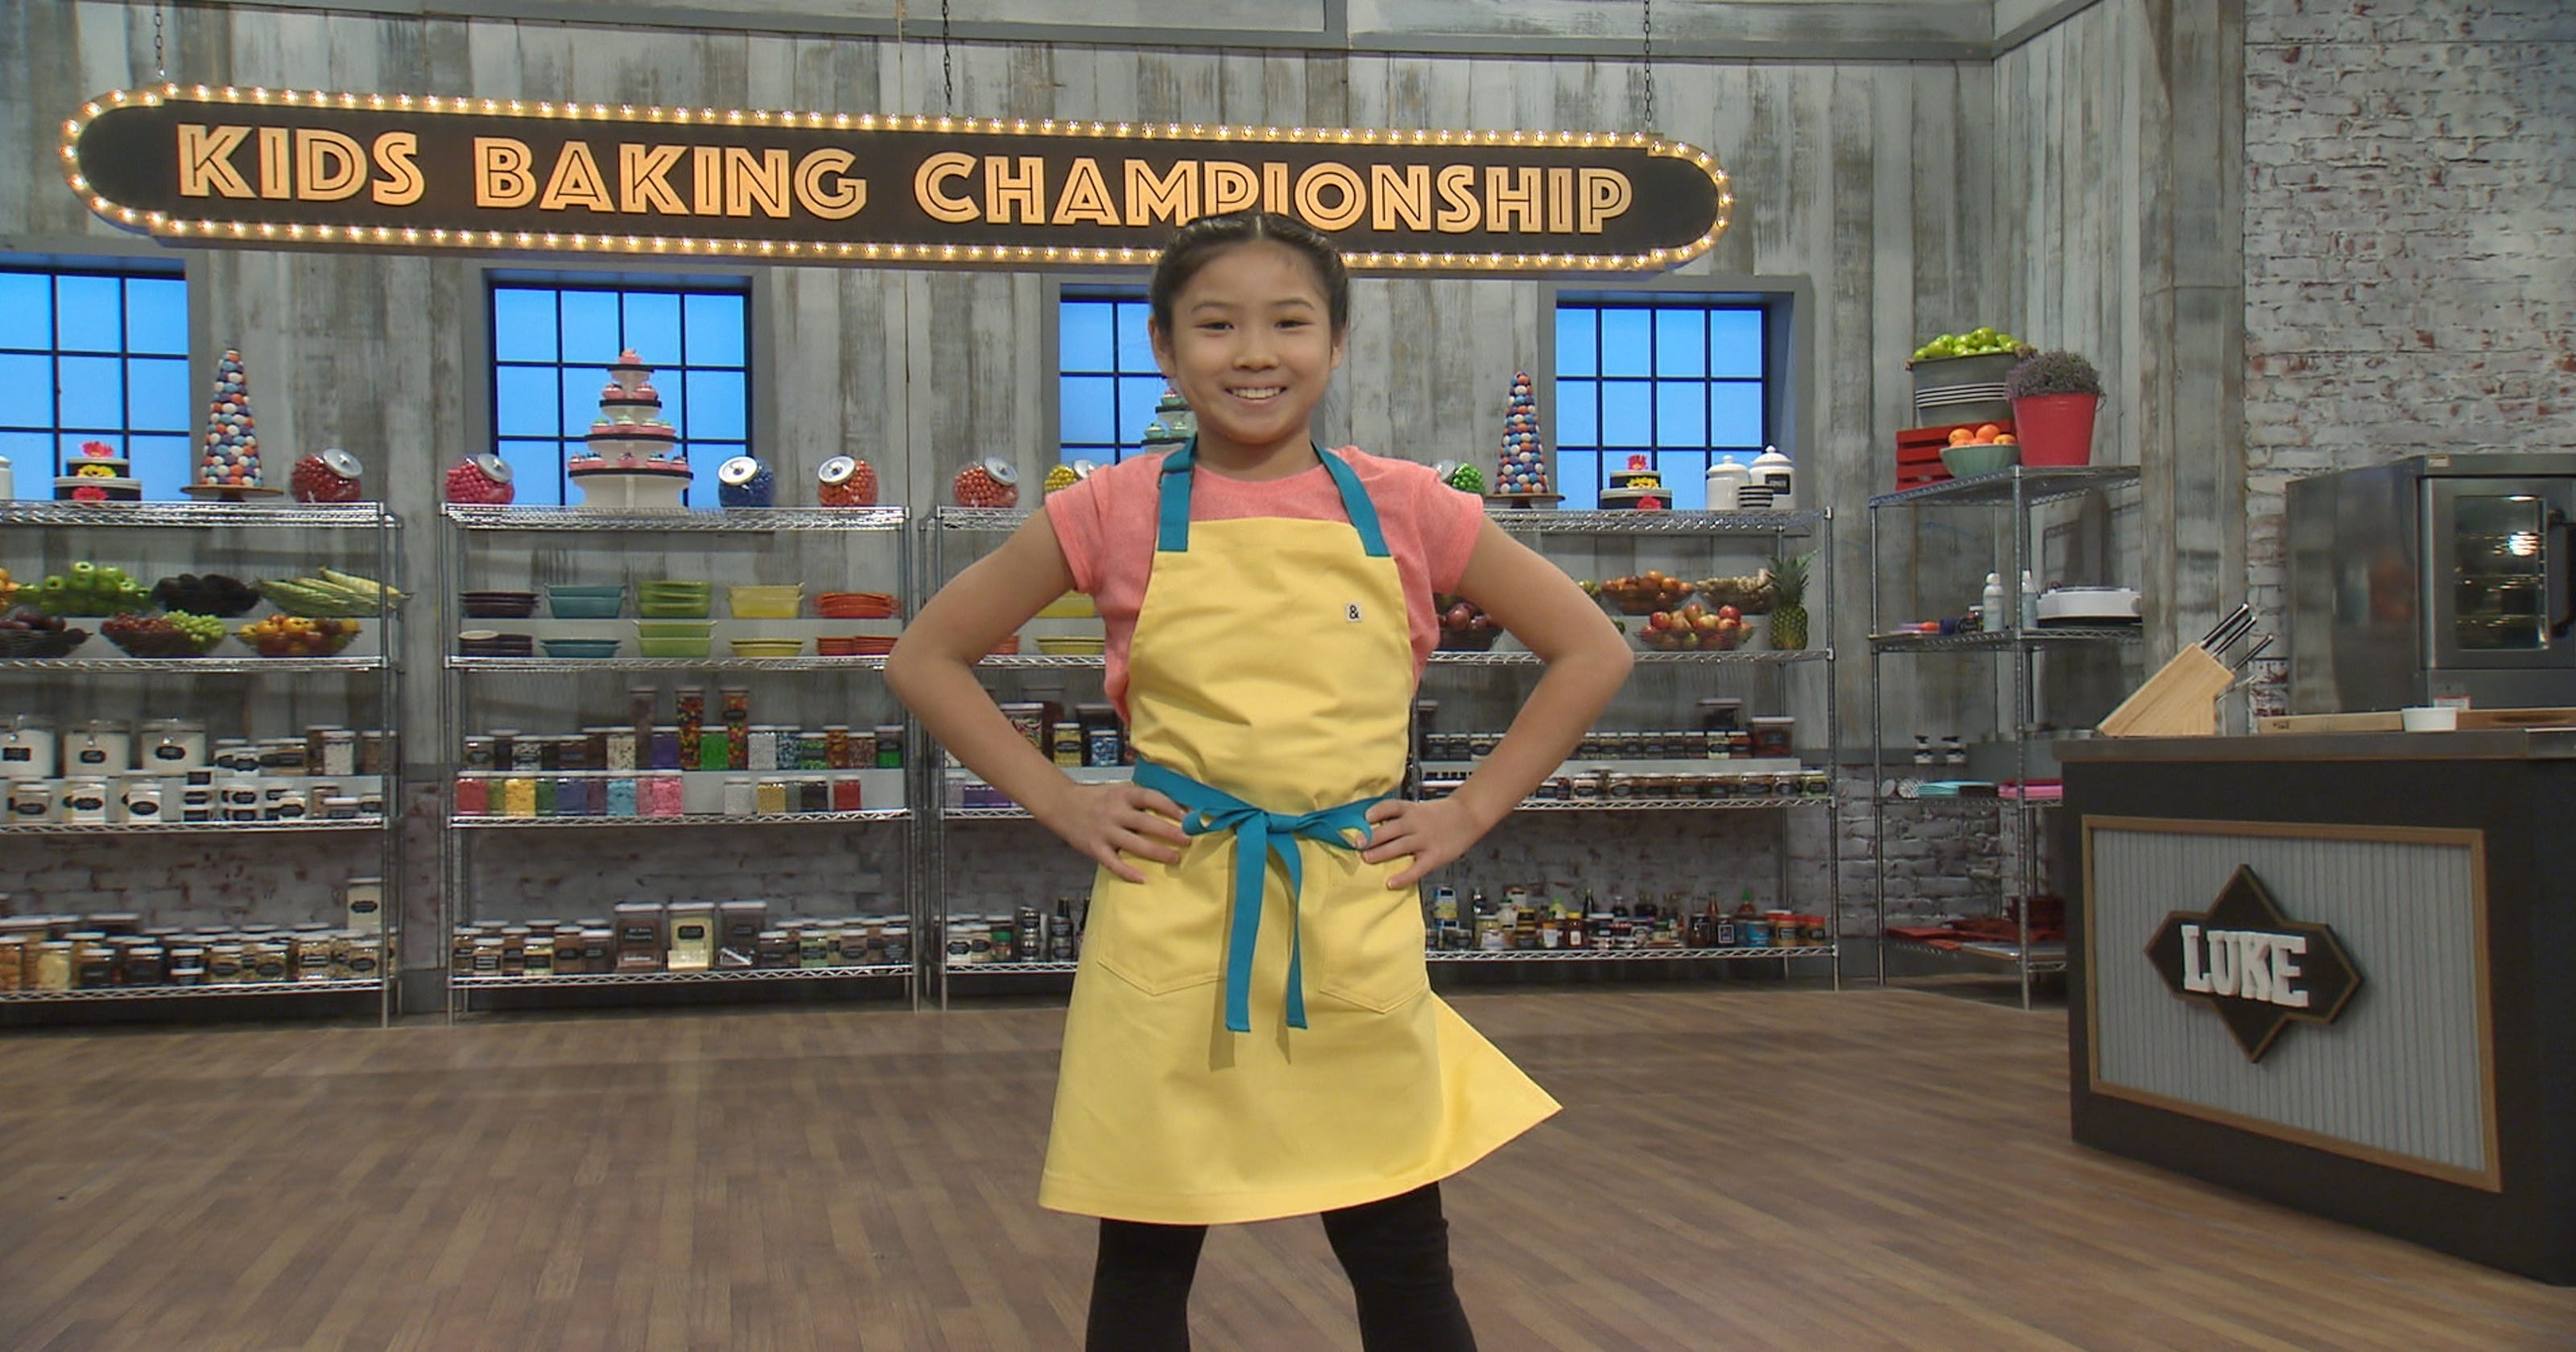 Closter NJ teen is winner of Food Network's 'Kids Baking